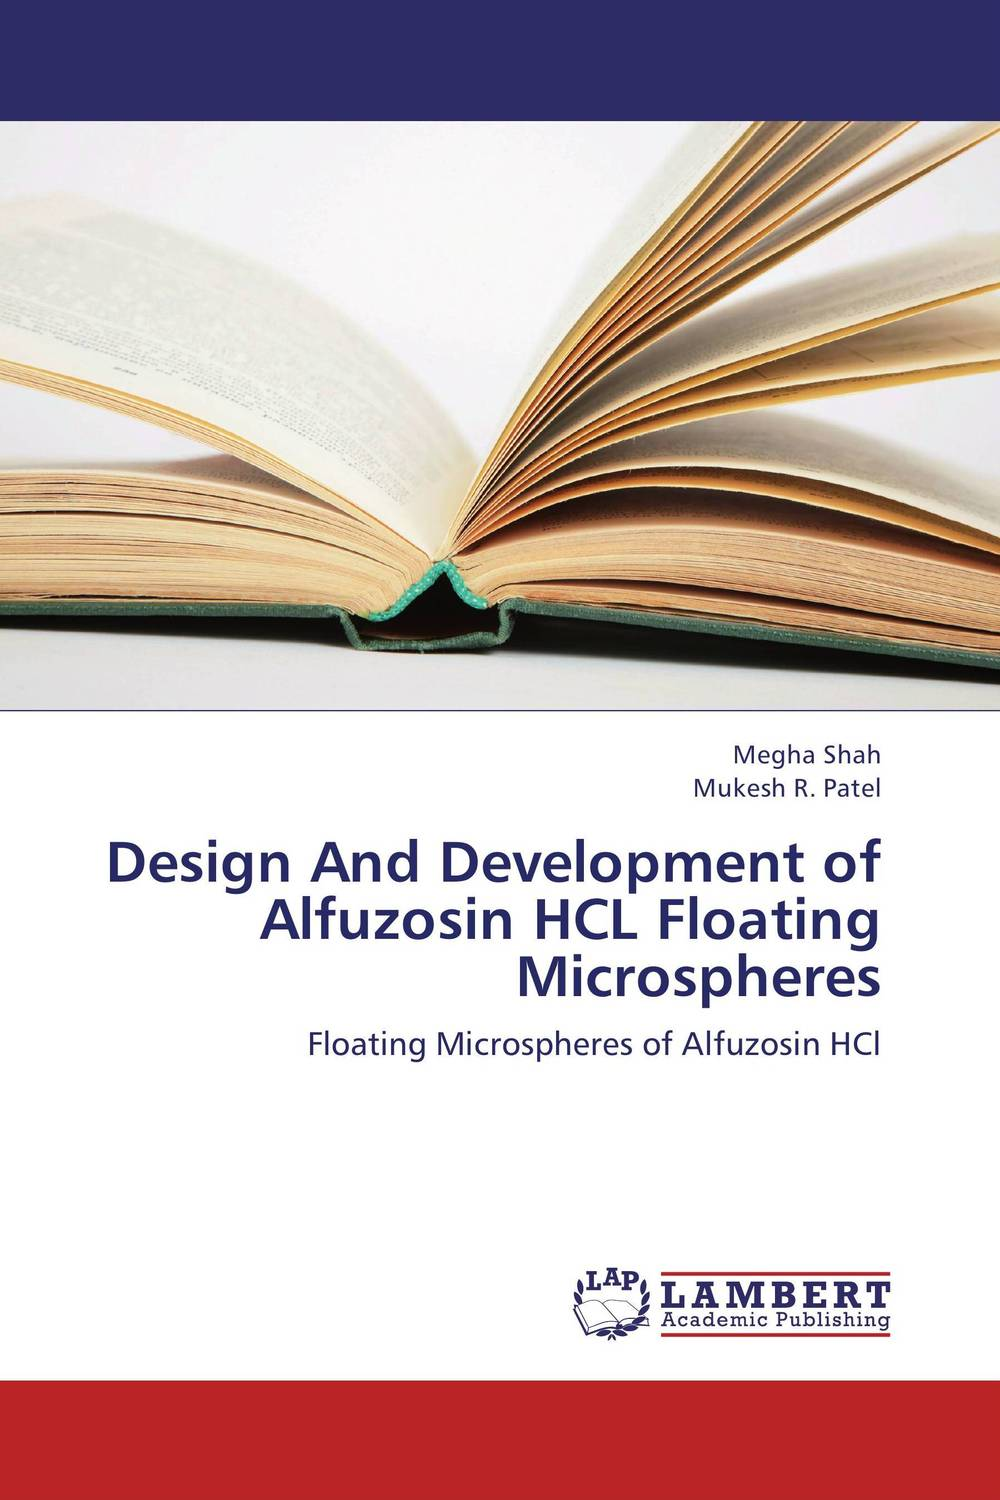 Design And Development of Alfuzosin HCL Floating Microspheres drug discovery and design